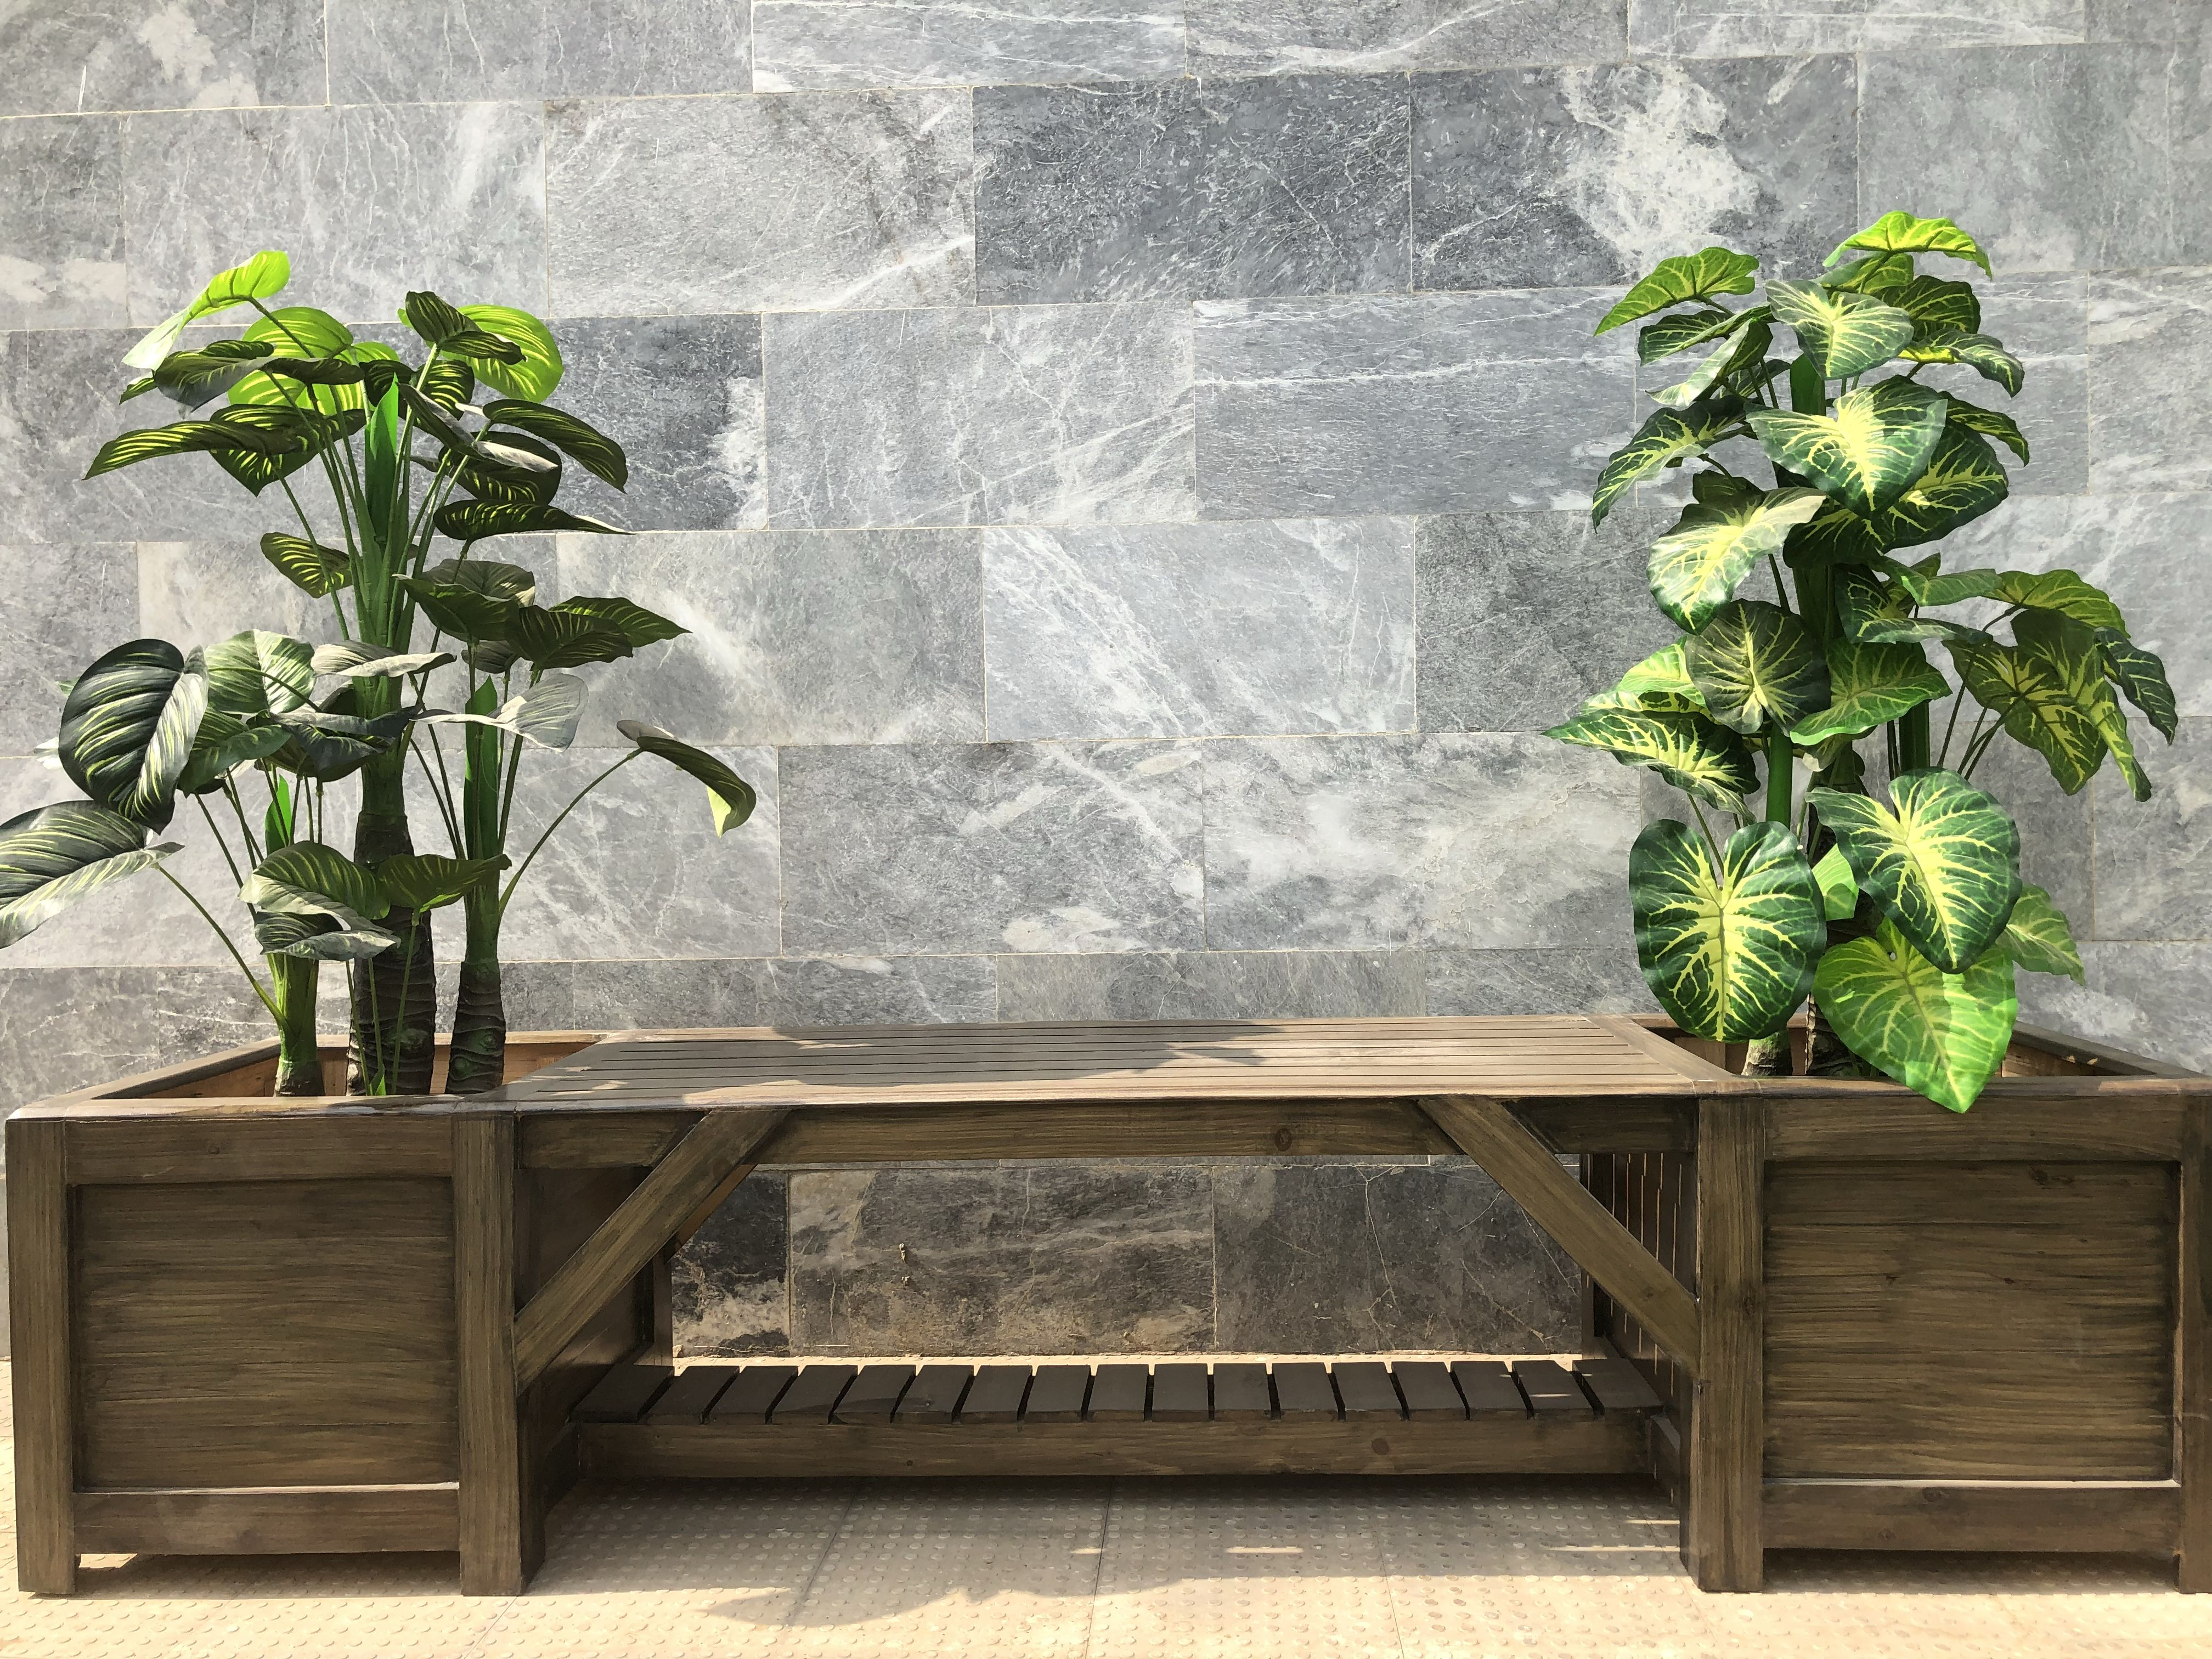 Wooden bench with planters  Wooden planters, Wooden bench, Planters